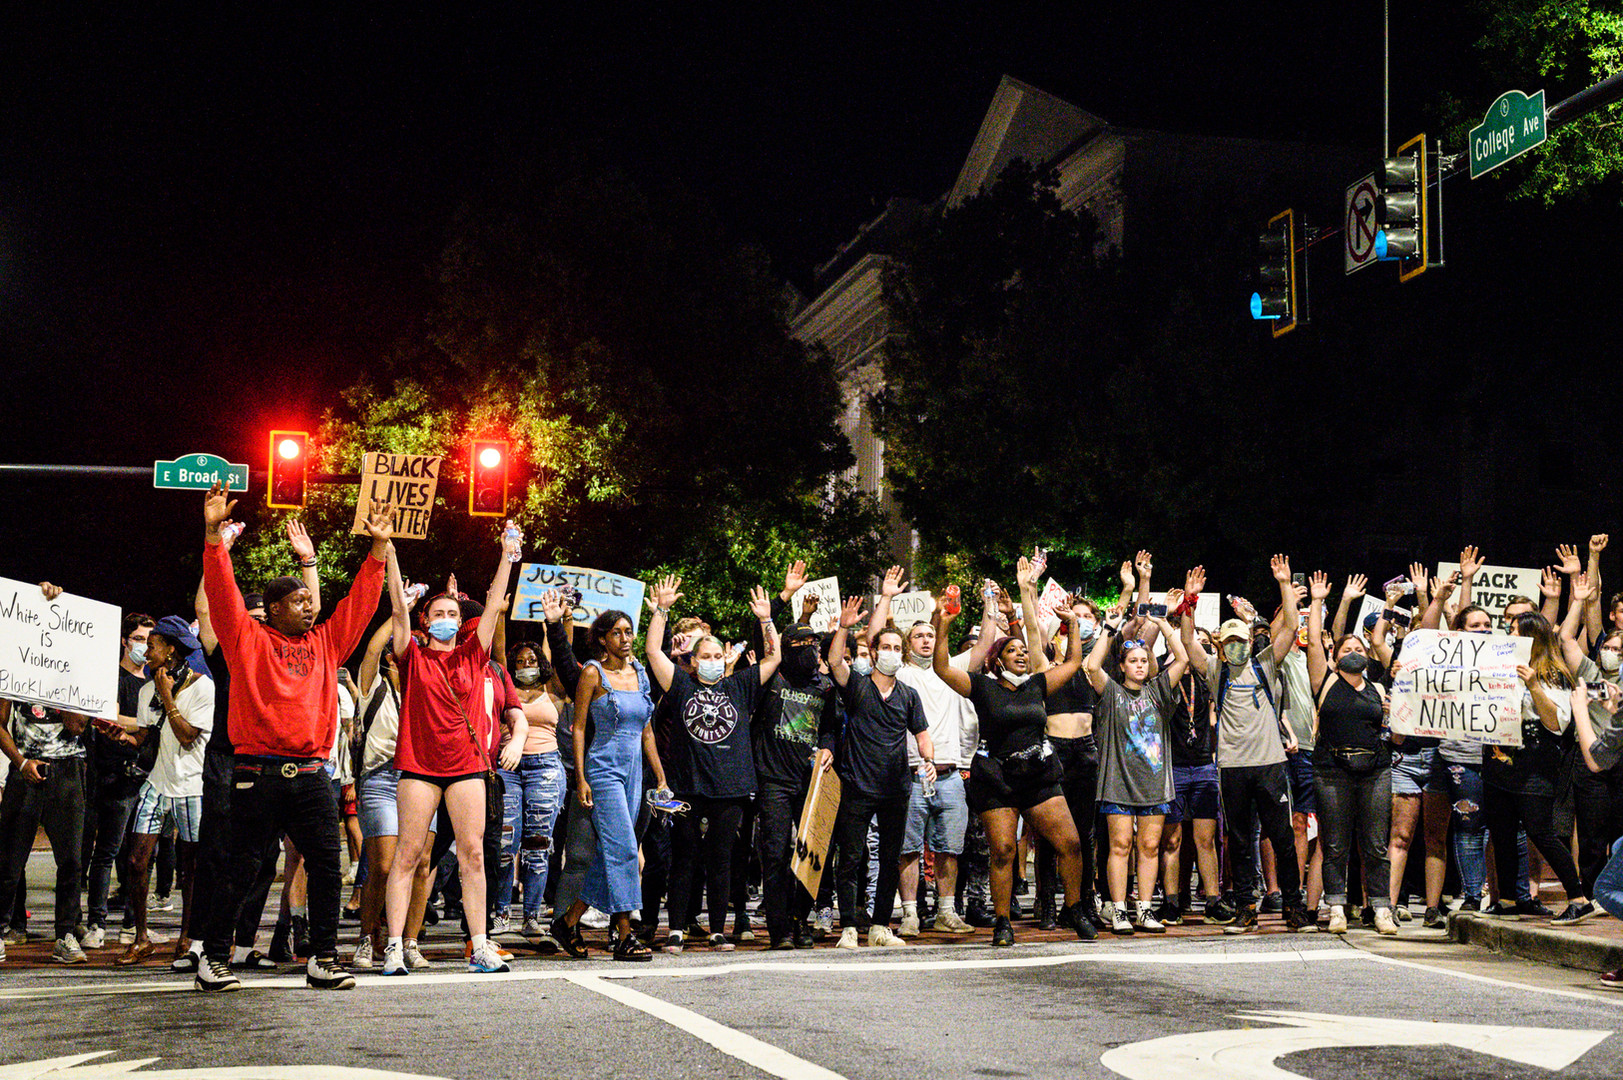 """Protestors shout """"hands up; don't shoot"""" in Athens, Georgia on Sunday, May 31, 2020. Two non-violent protests started in the afternoon, both calling for racial justice and an end to police brutality following the death of George Floyd in Minneapolis six days earlier. As the evening progressed, police forces surrounded the intersection with armored trucks, officers in riot gear and police cars."""